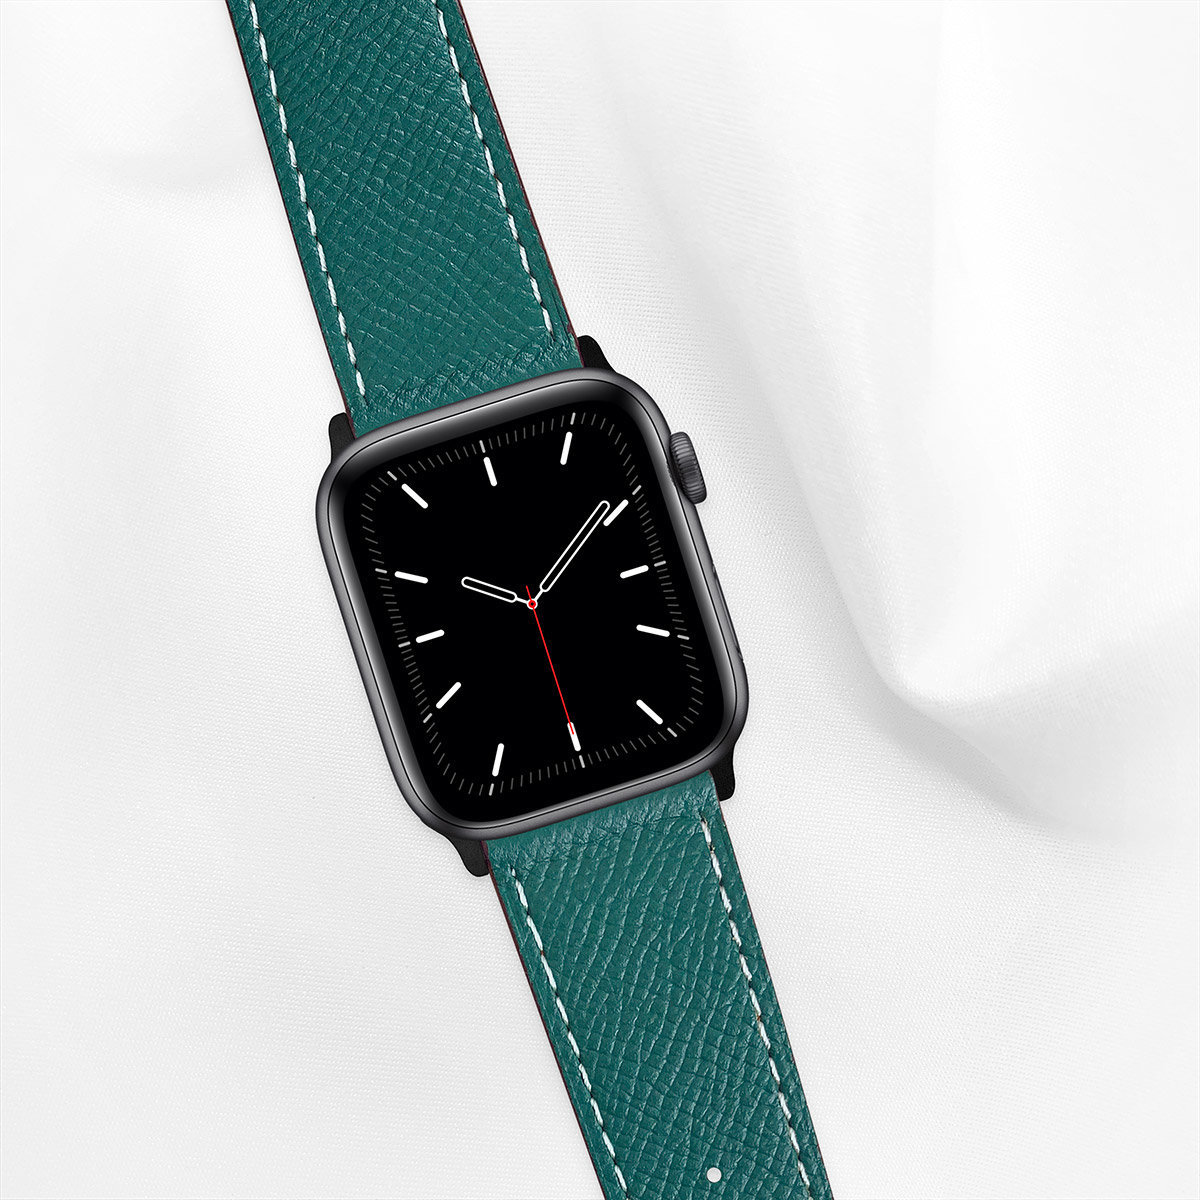 44mm Apple Watch Strap, Epsom Leather, Ultramarine Green